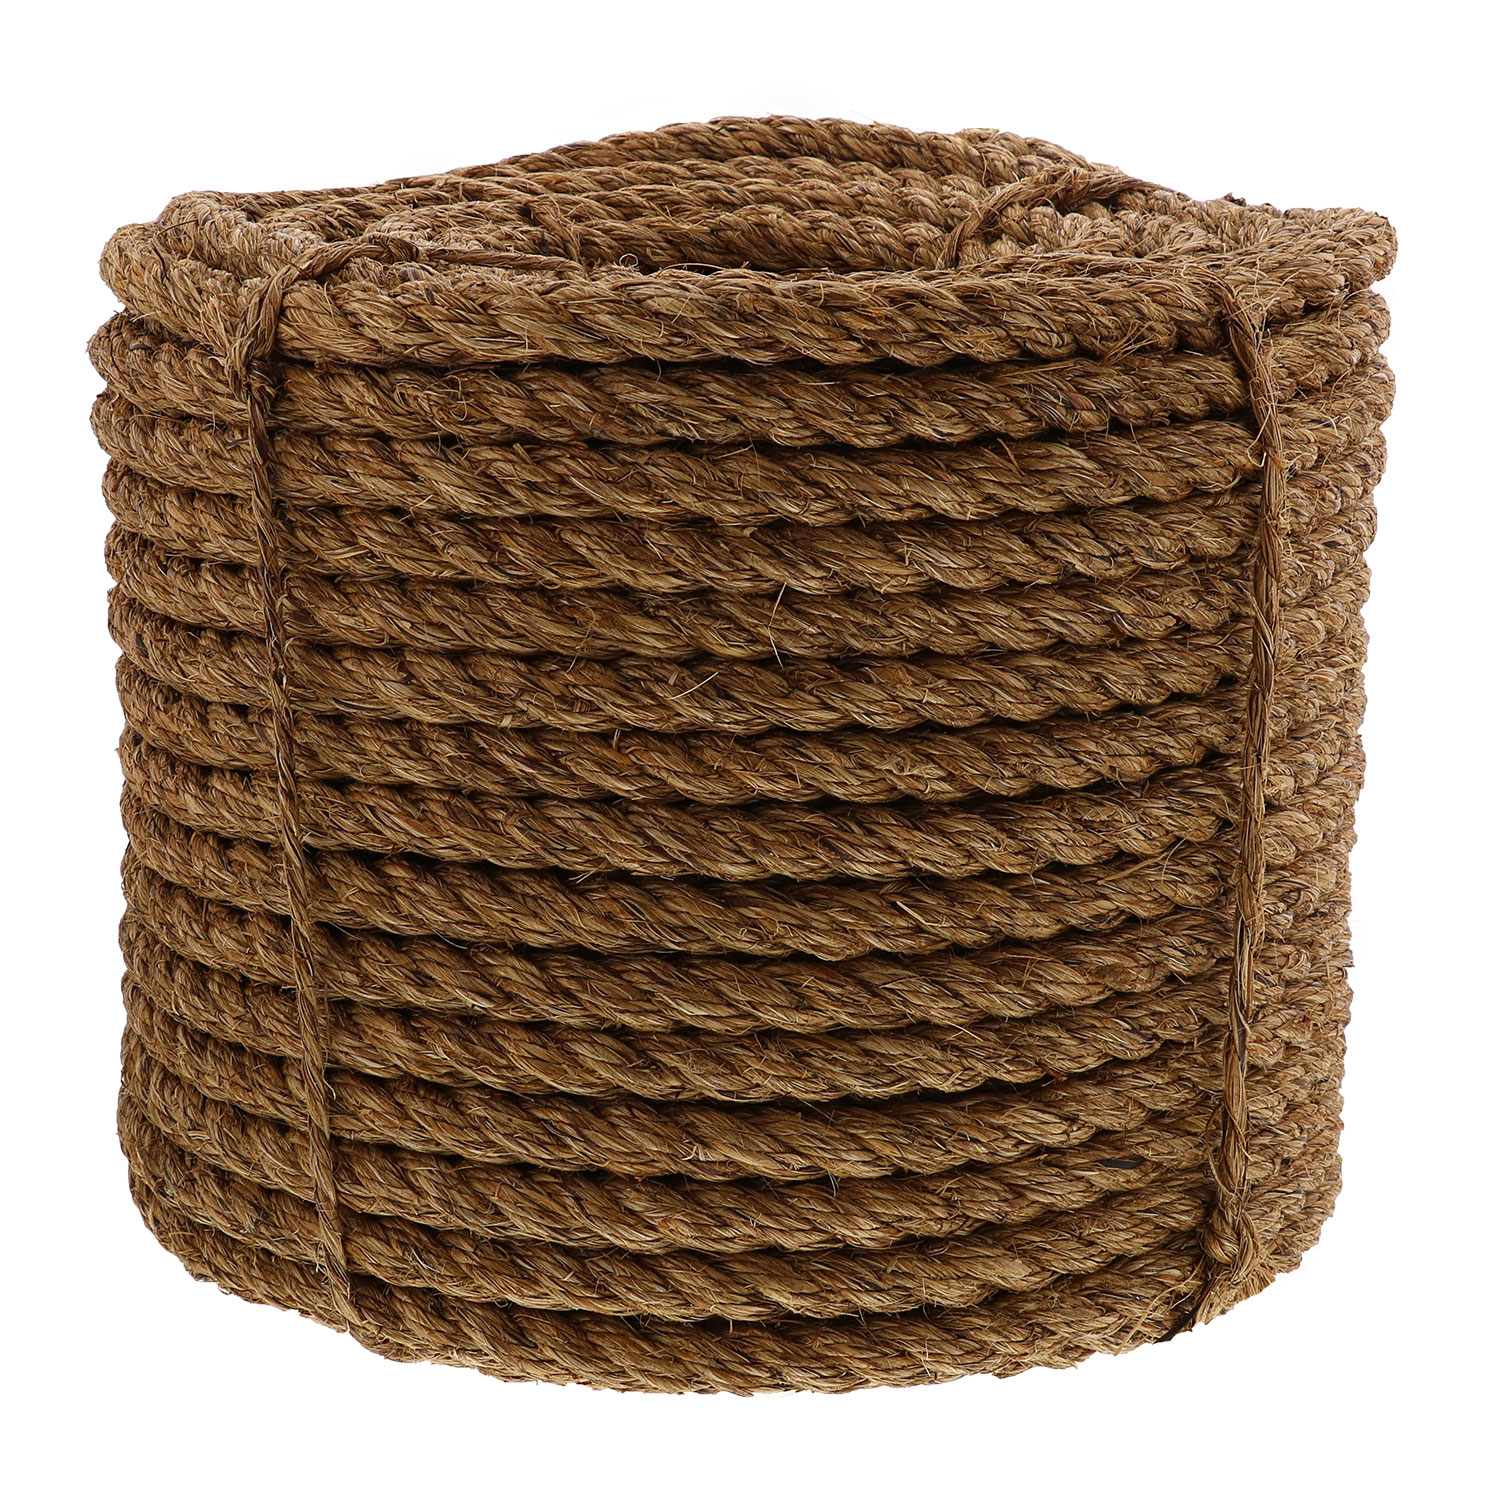 "1/2"" x 600' Coil, 3-Strand Manila Rope Image 1"